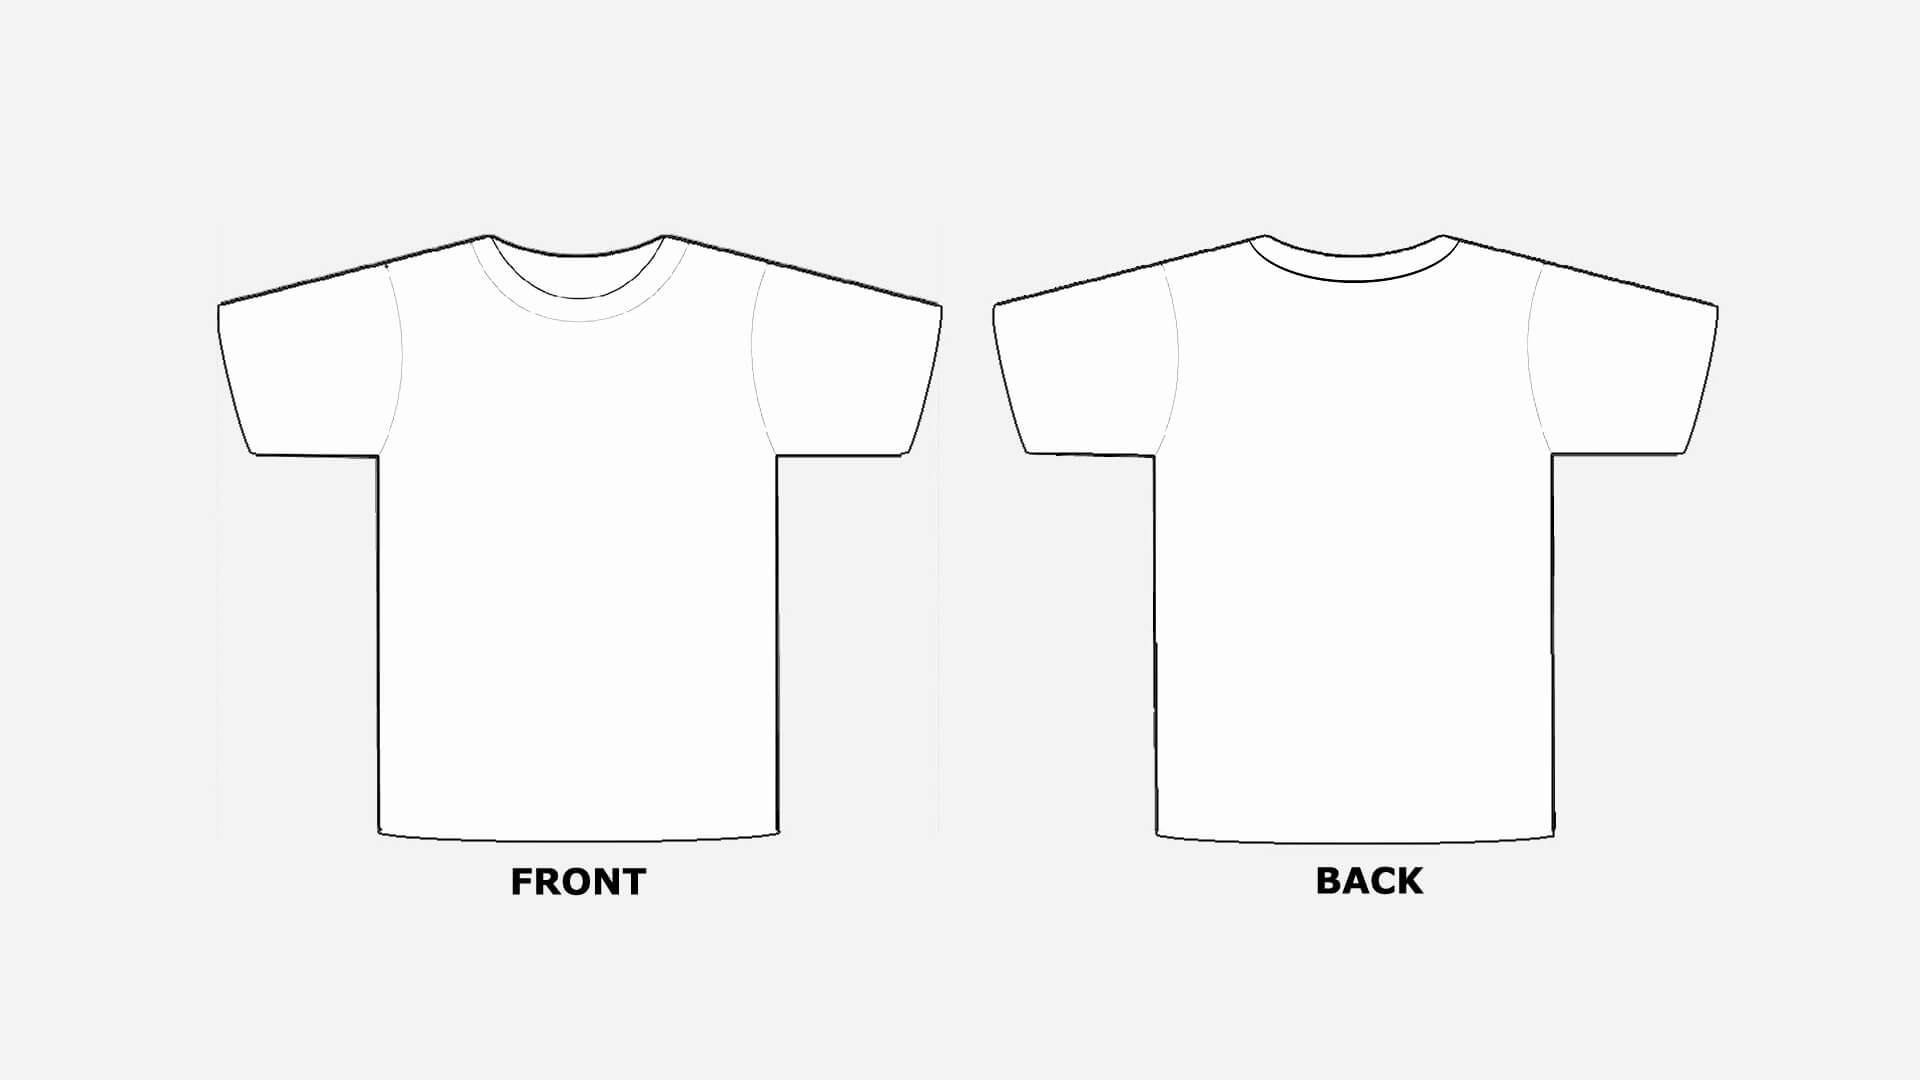 Blank T Shirt Template Clip Art - Dreamworks within Blank Tshirt Template Printable